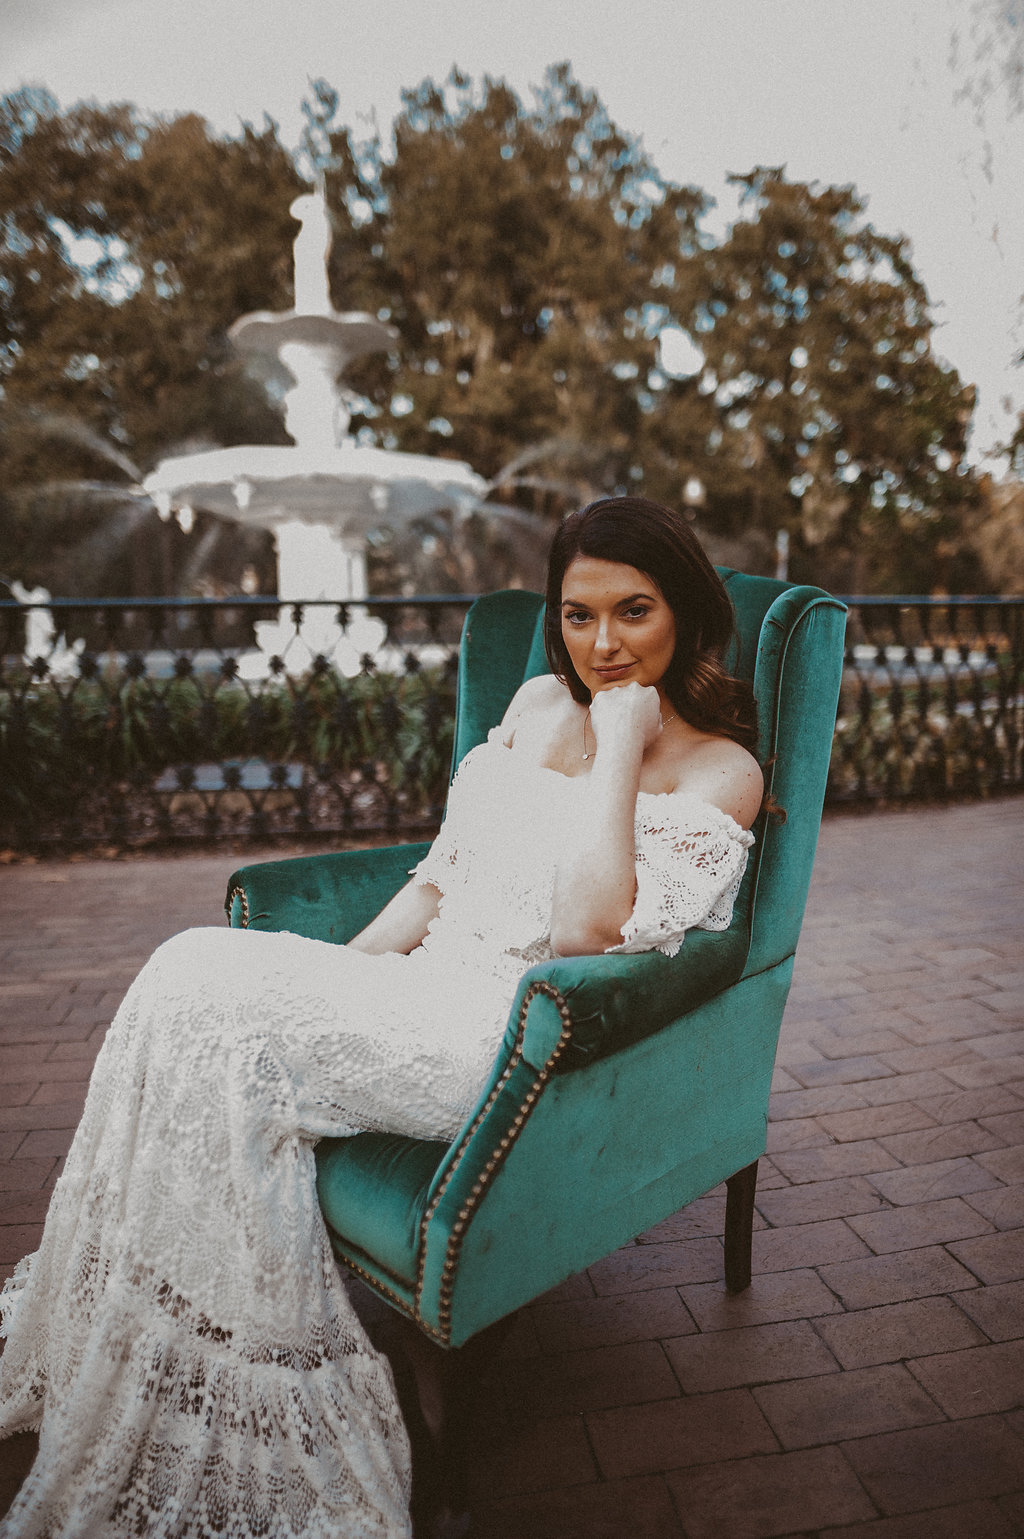 ivory-and-beau-bridal-boutique-savannah-2018-wedding-trends-daughters-of-simone-l+m-photography-savannah-photography-trendy-wedding-7.jpg